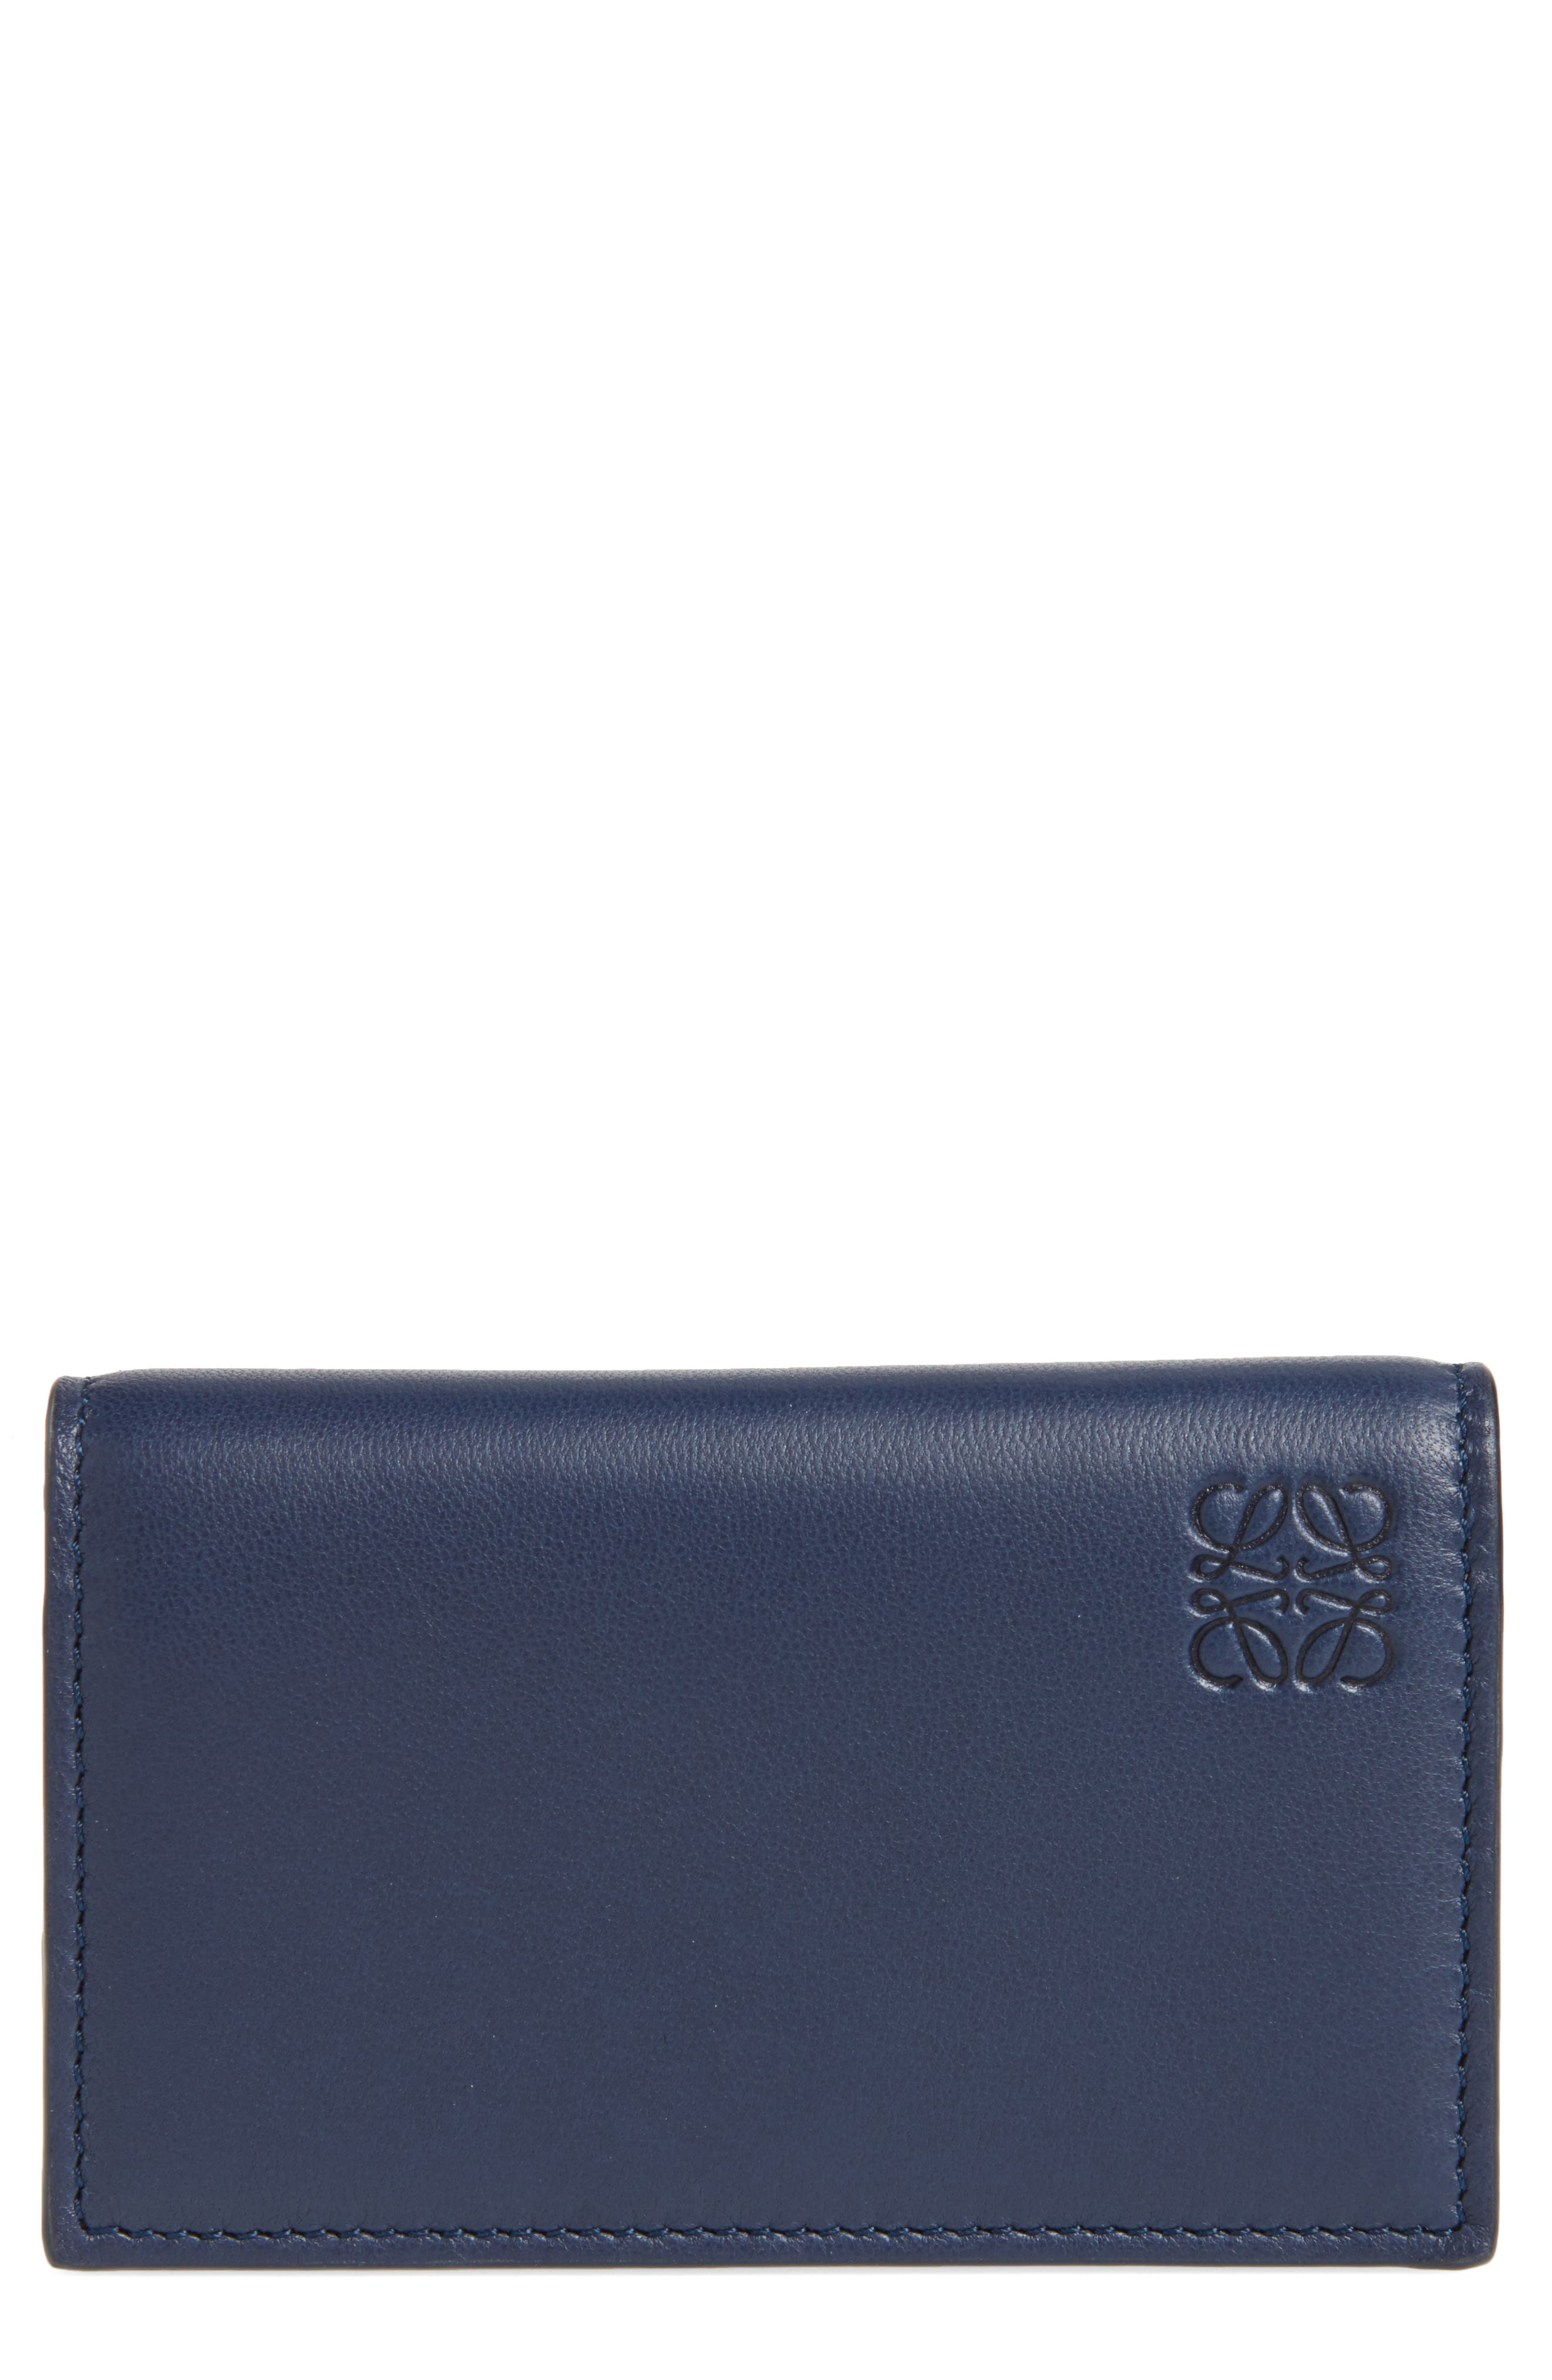 Calfskin Leather Business Card Case,                         Main,                         color, 429